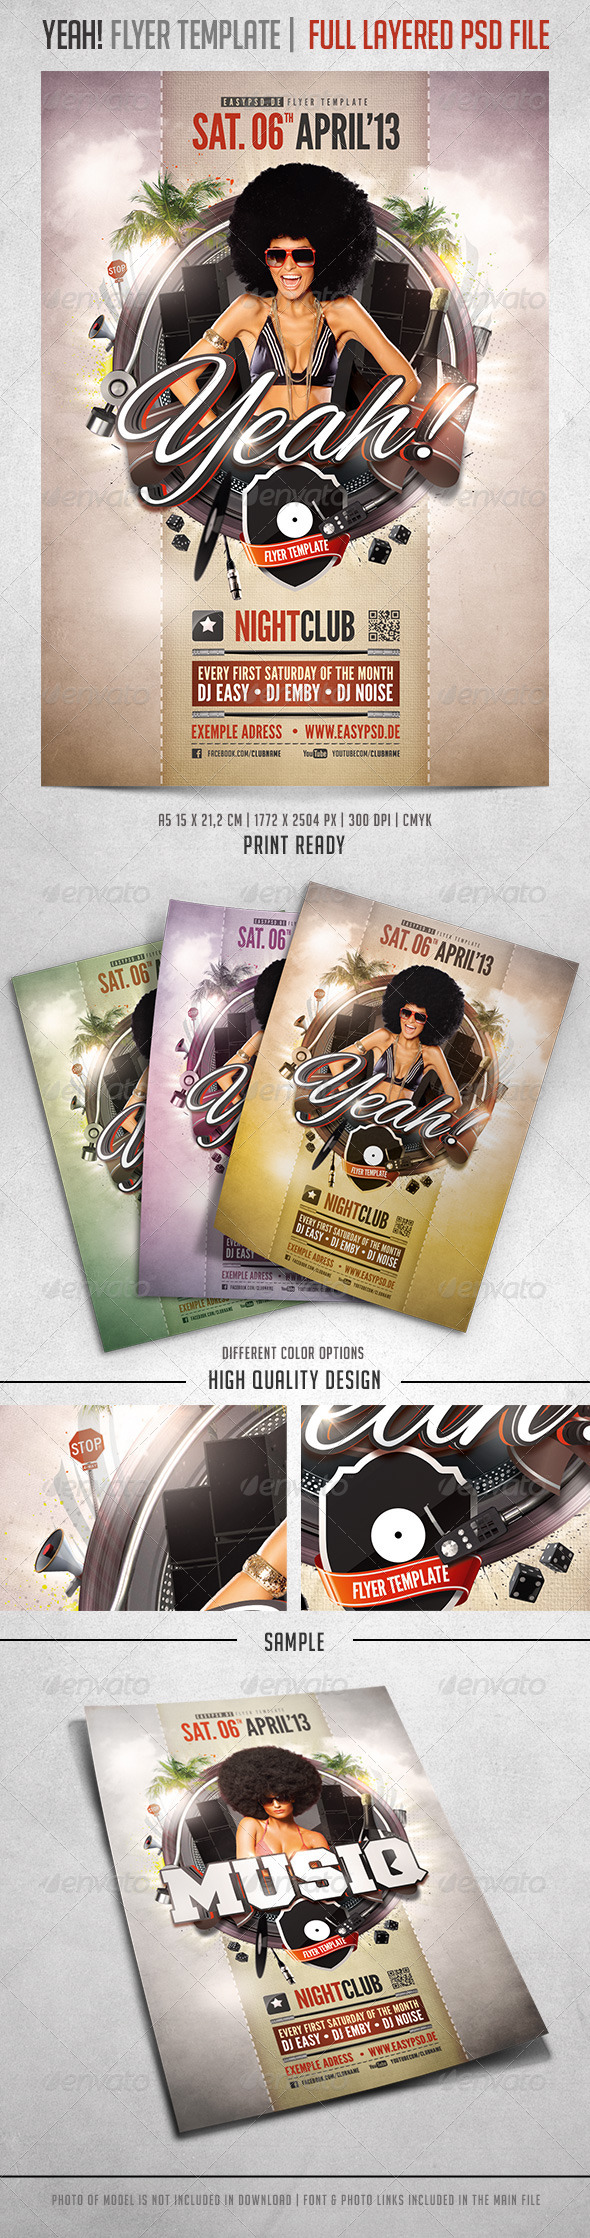 Yeah Flyer Template - Events Flyers